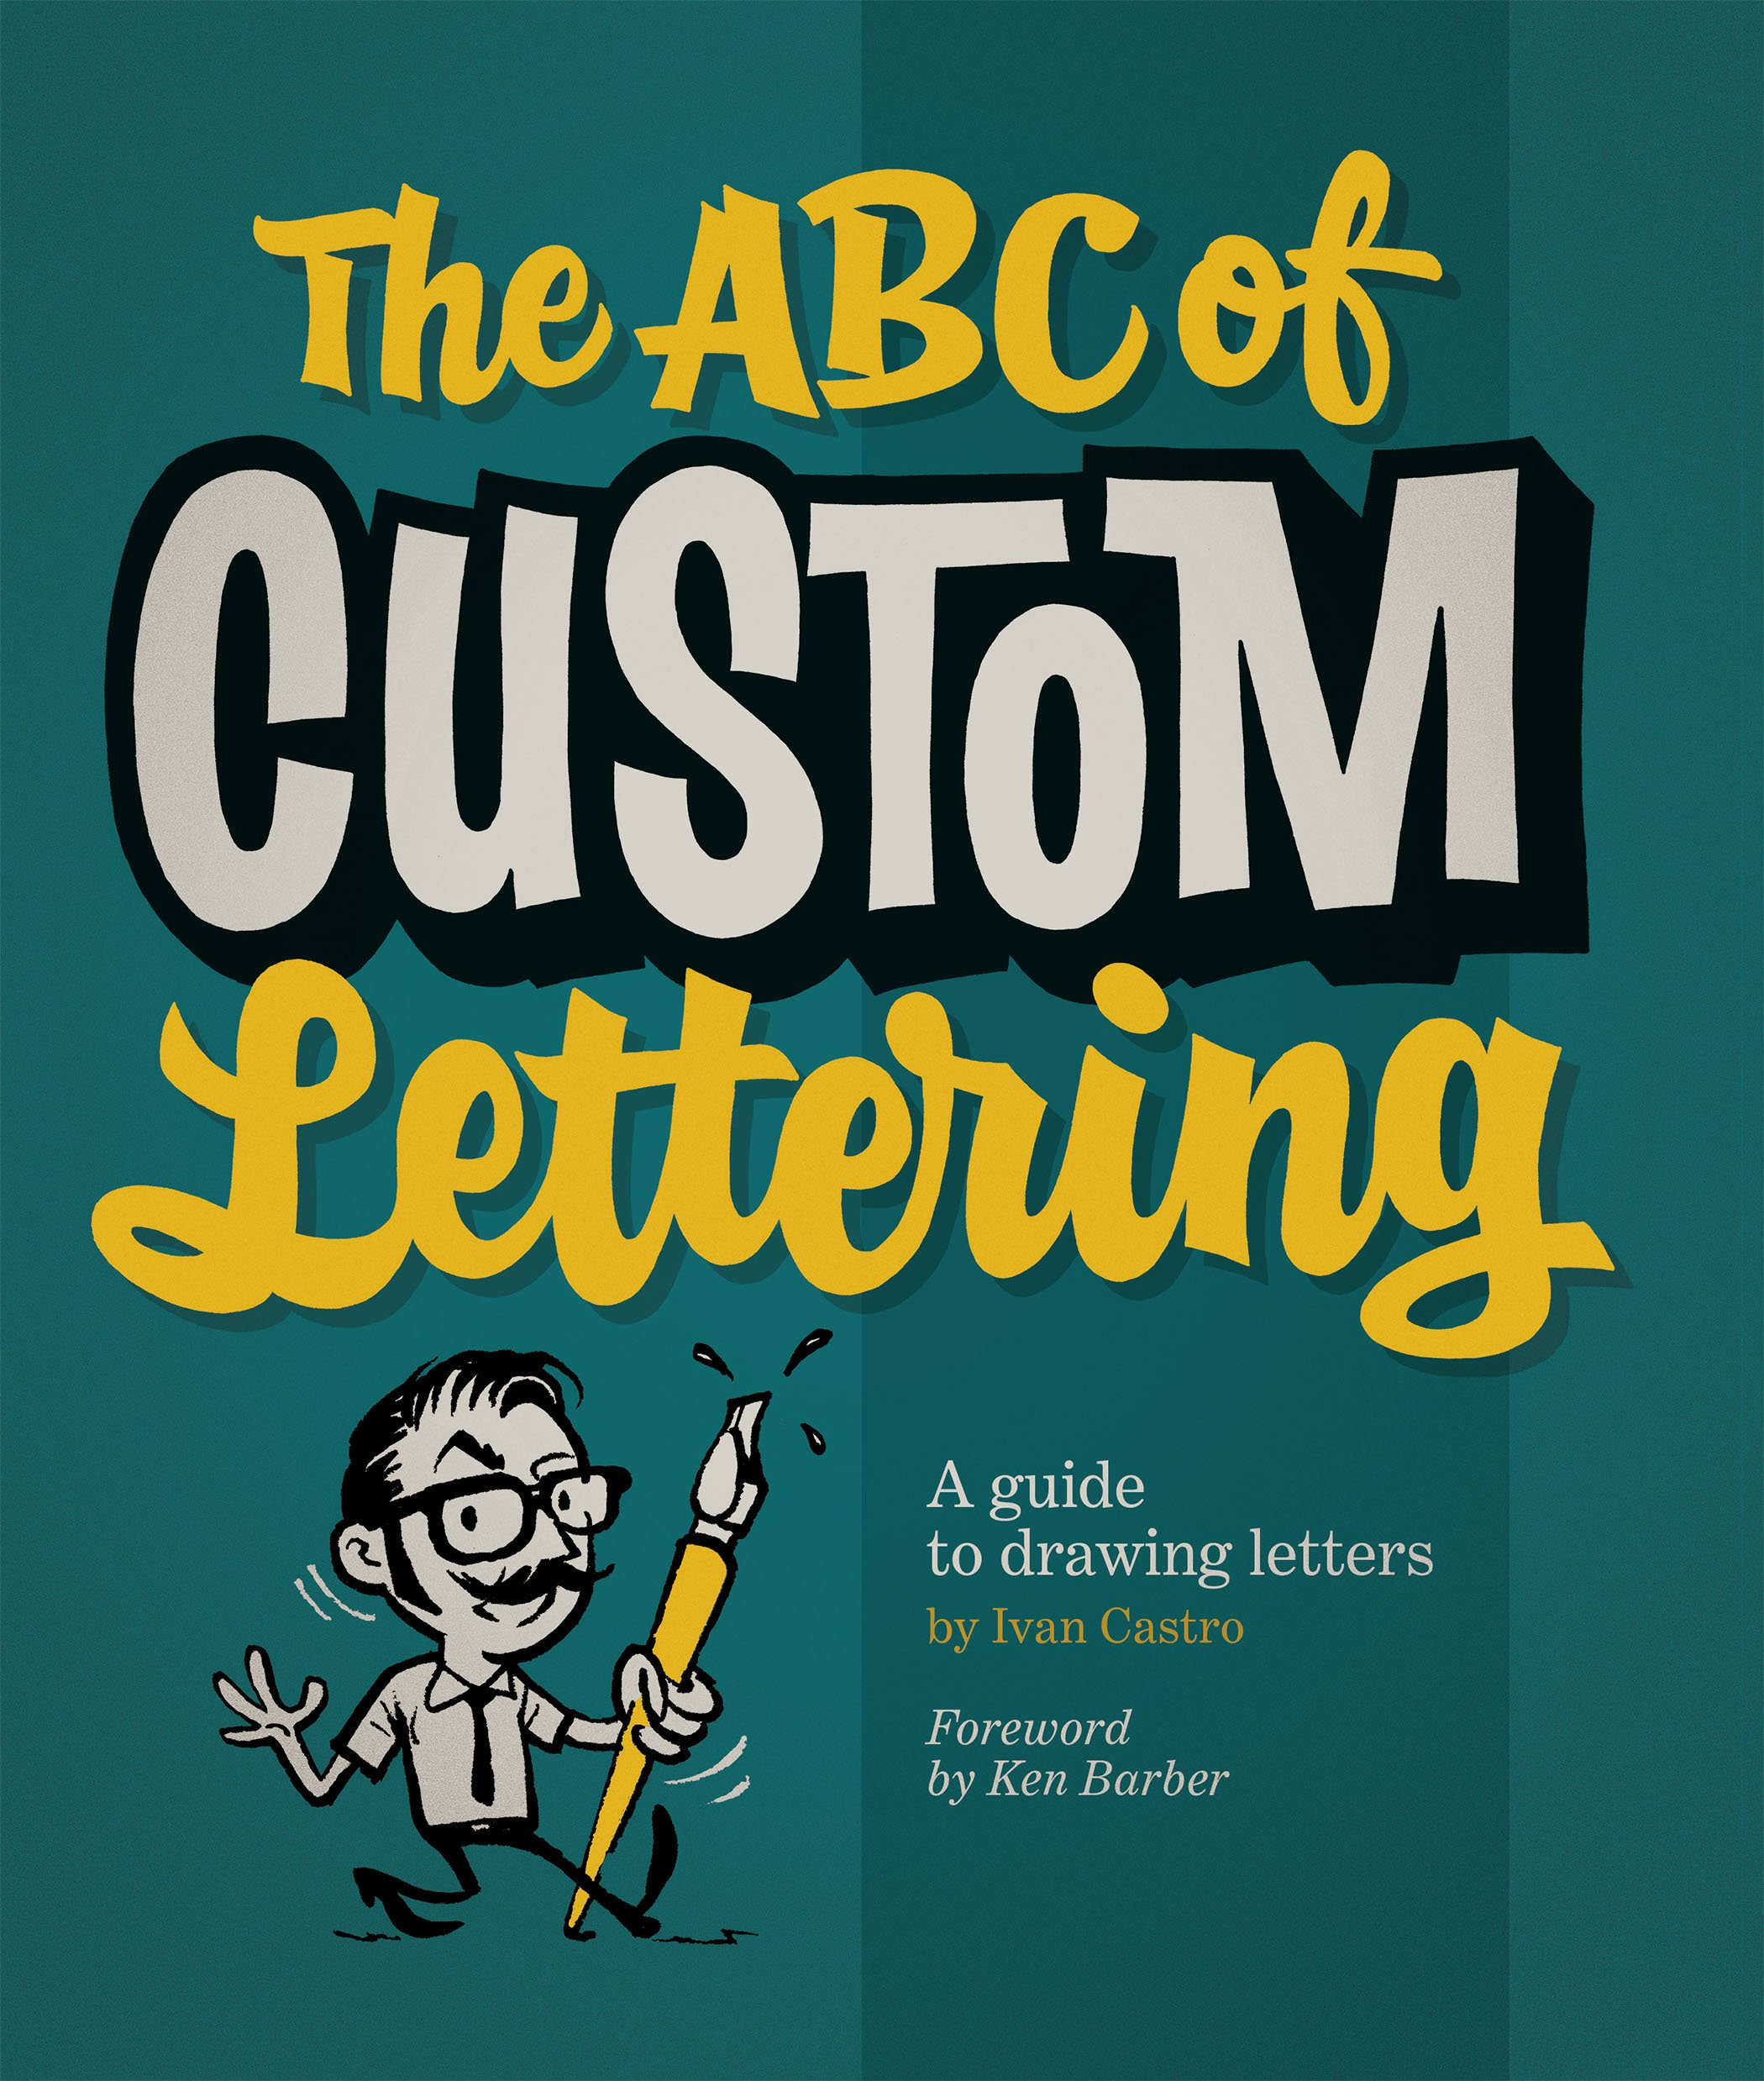 Book: The ABC of Custom Lettering via www.angelamaywaller.com